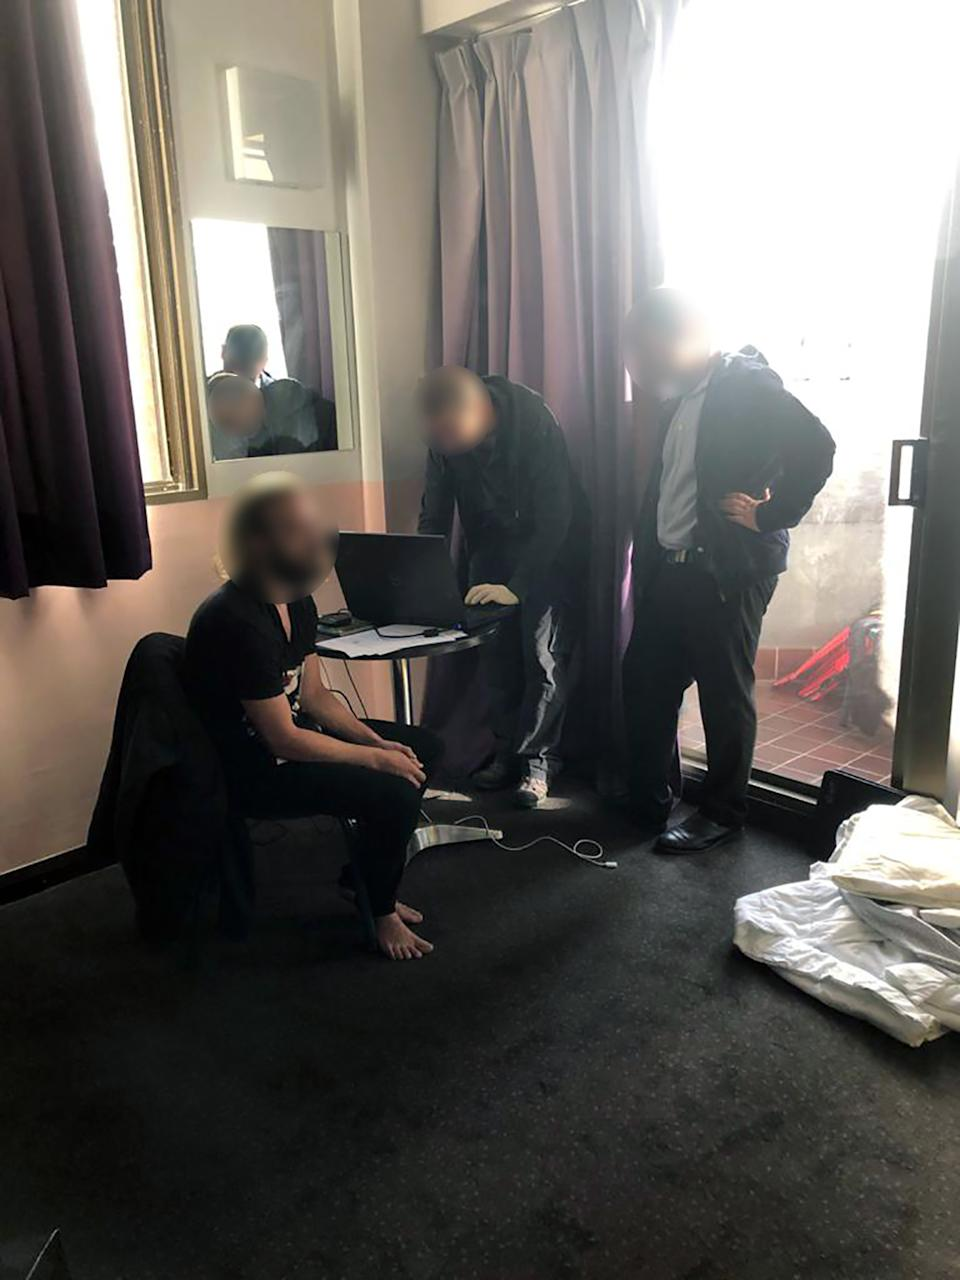 The man being arrested on April 8 last year at a Sydney youth hostel by Australian Federal Police.